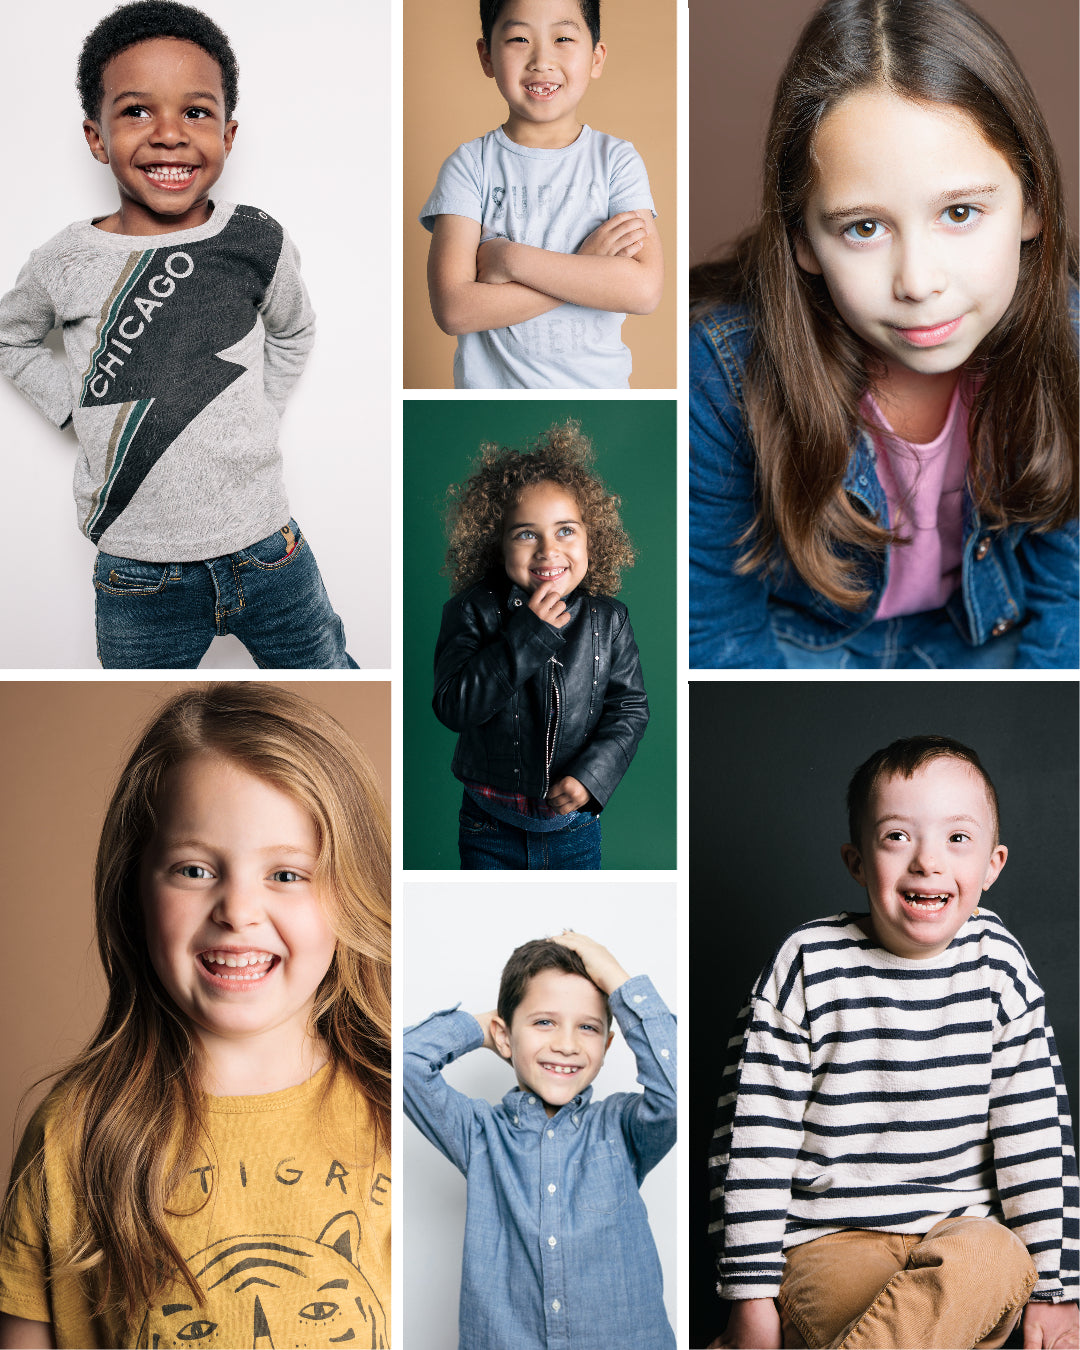 ALPS Little Actors Workshop 8-12 years old. March 20, 1pm-4pm